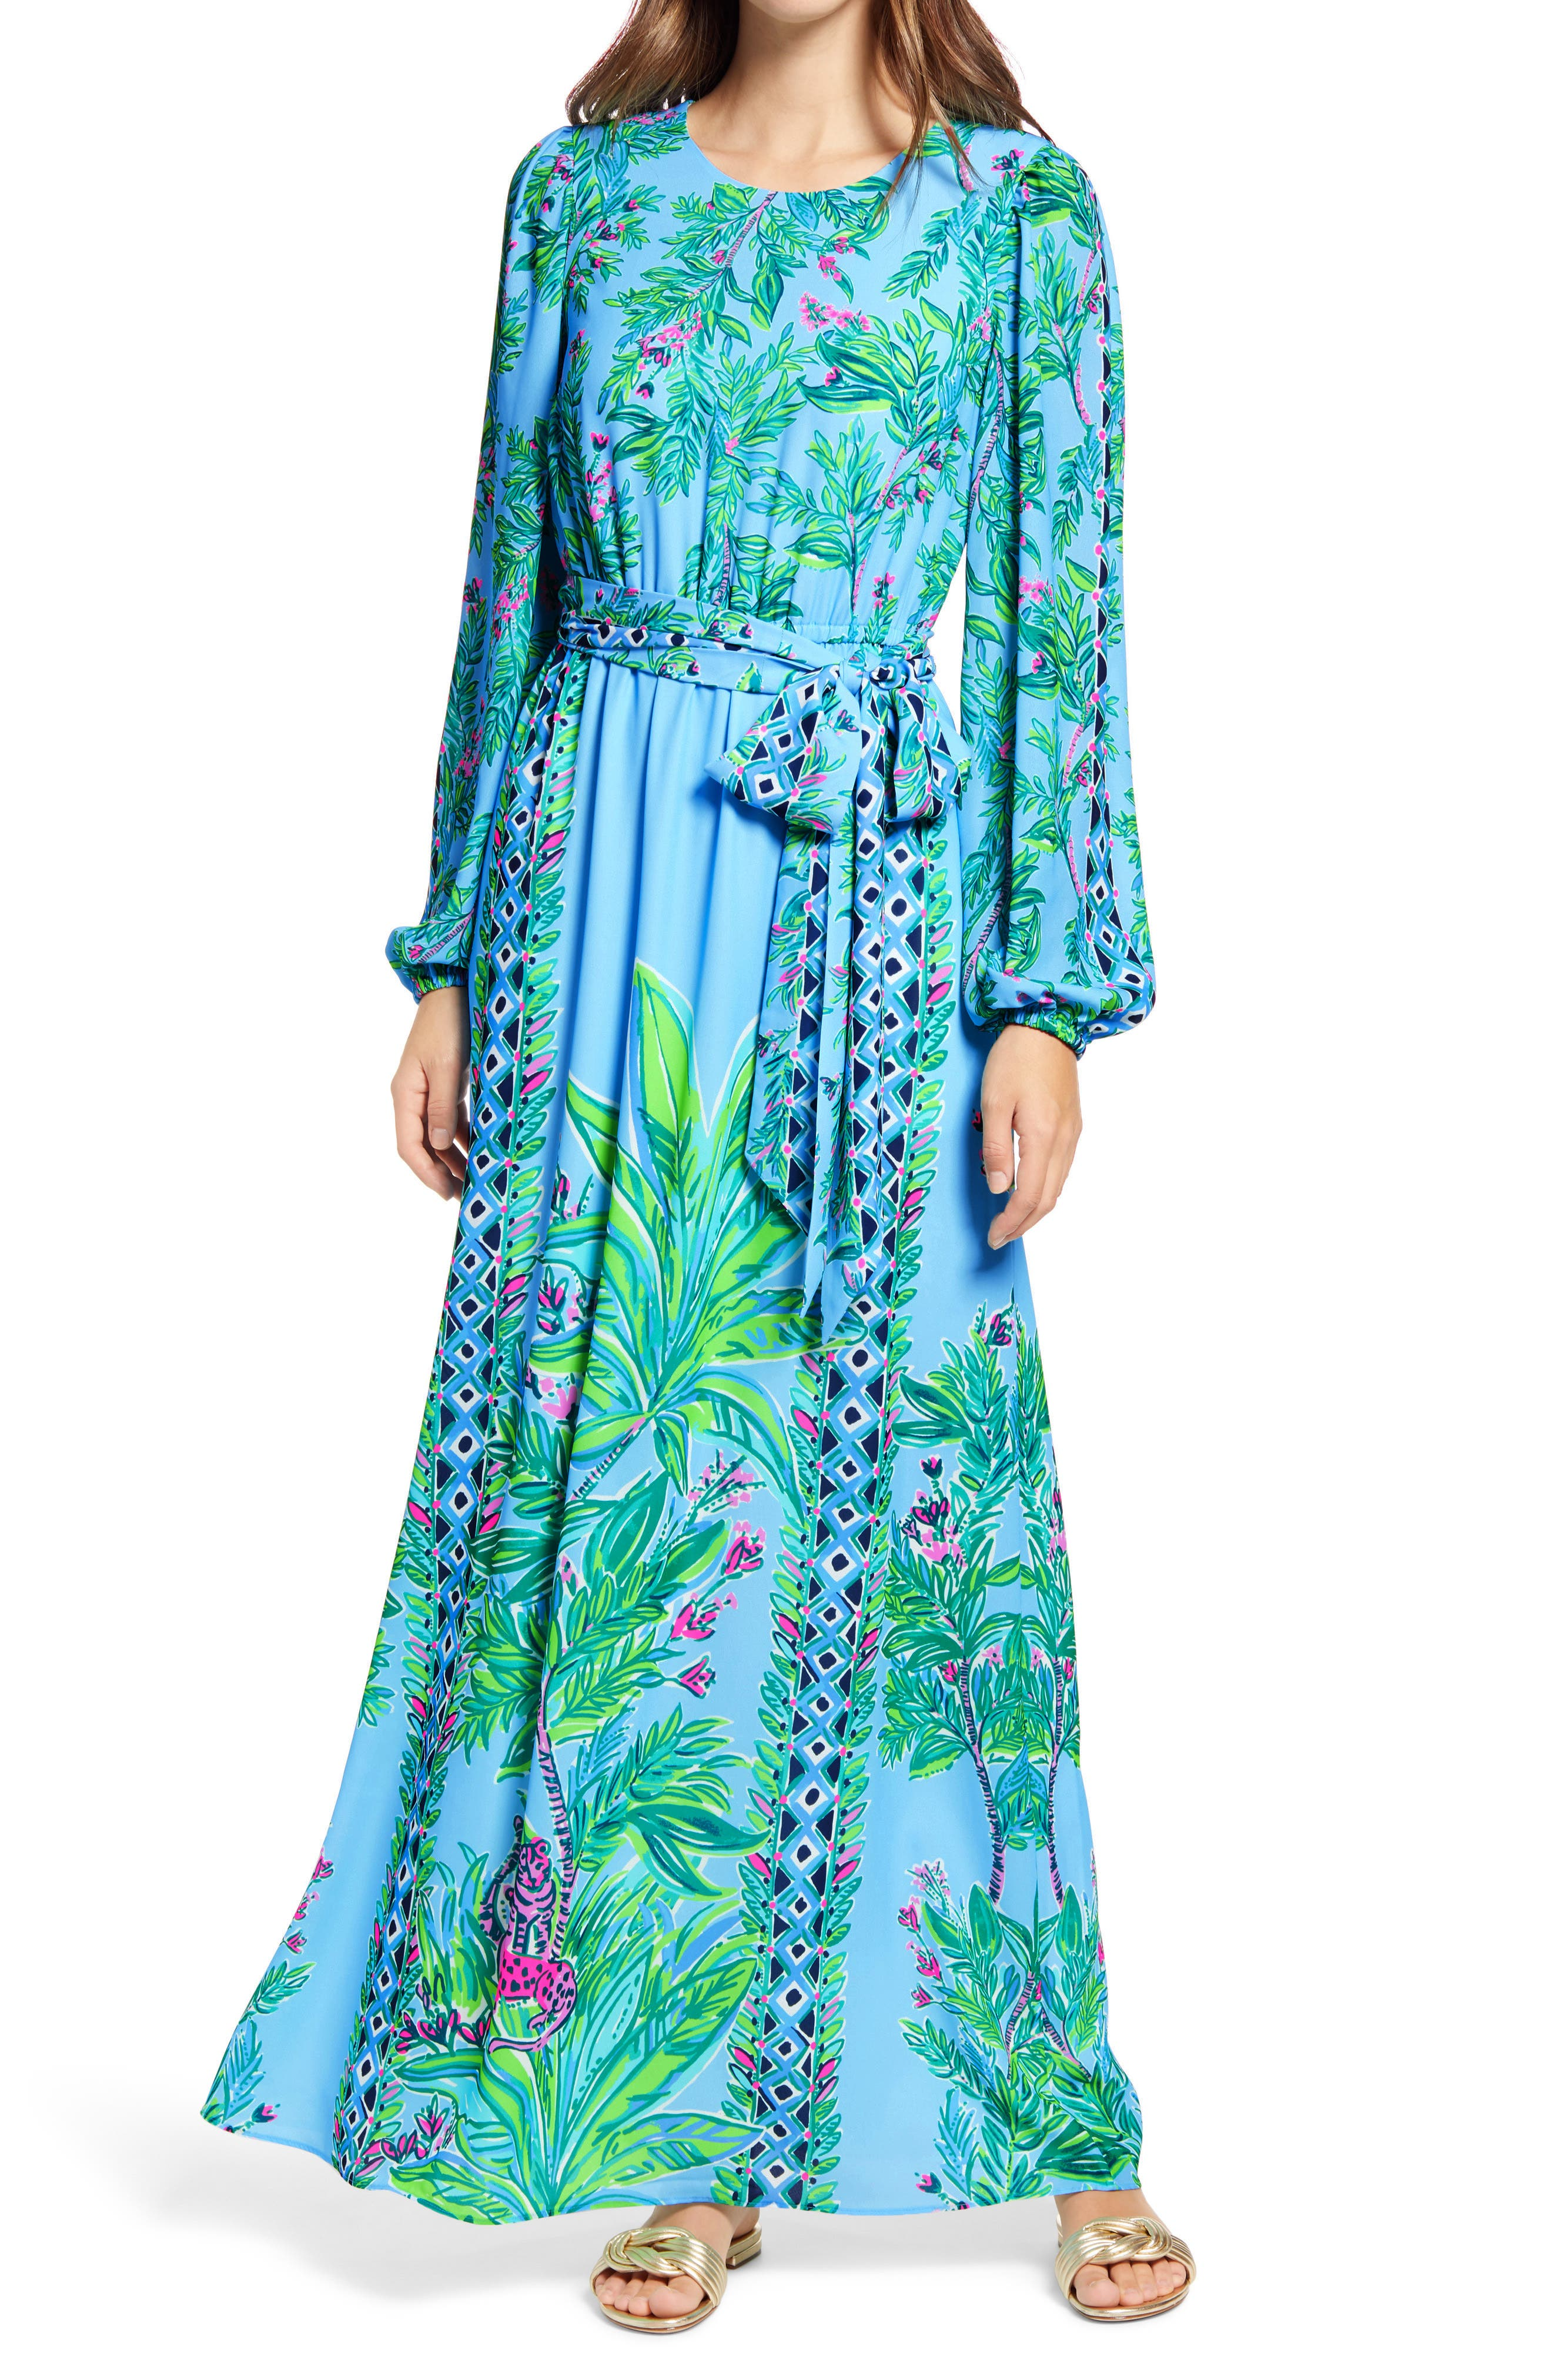 Get a taste of the island life with this vibrant long-sleeve maxi dress fashioned with a polished jewel neckline and a waist-defining belt. Style Name: Lilly Pulitzer Chyanna Maxi Dress. Style Number: 6129969. Available in stores.